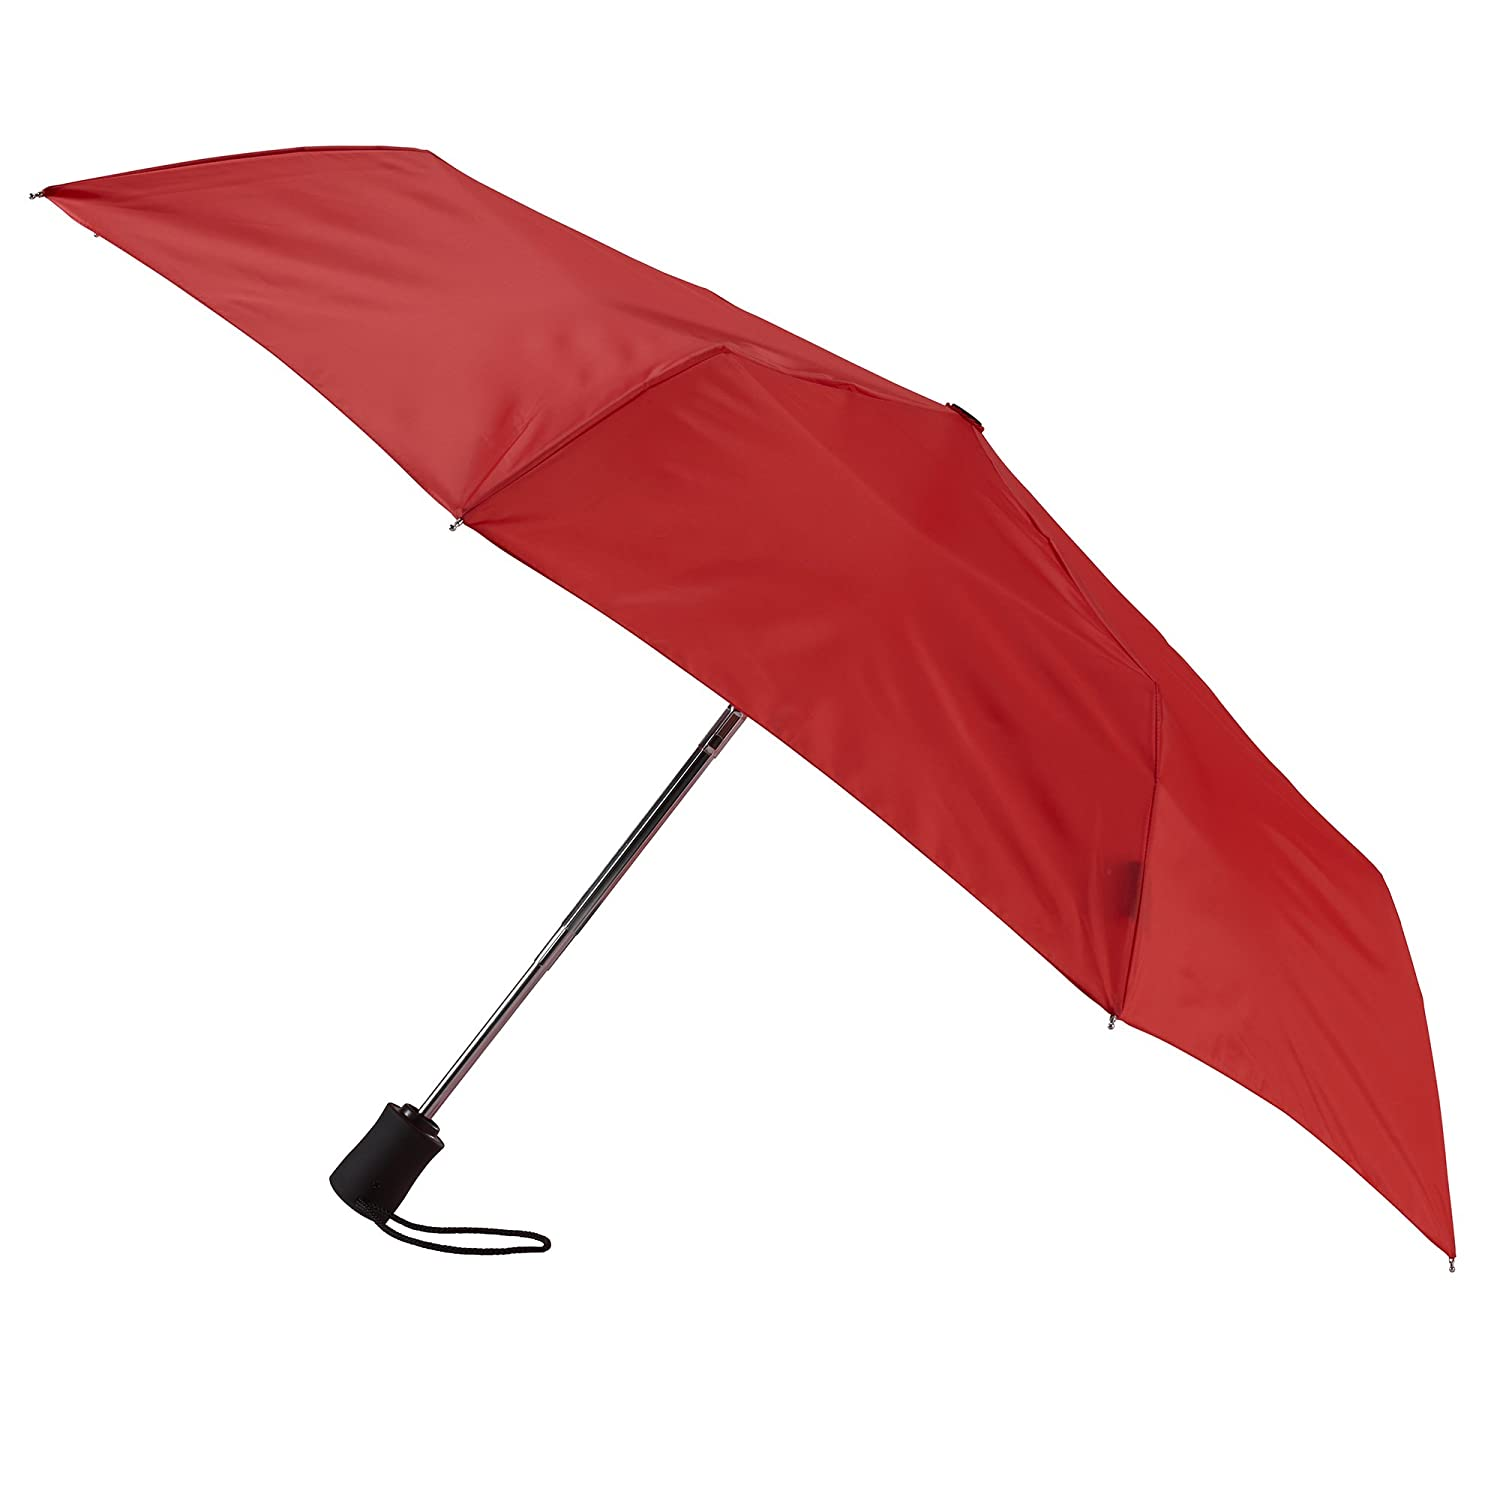 Lewis N. Clark Compact & Lightweight Travel Umbrella Opens & Closes Automatically, Red, One Size 413RED